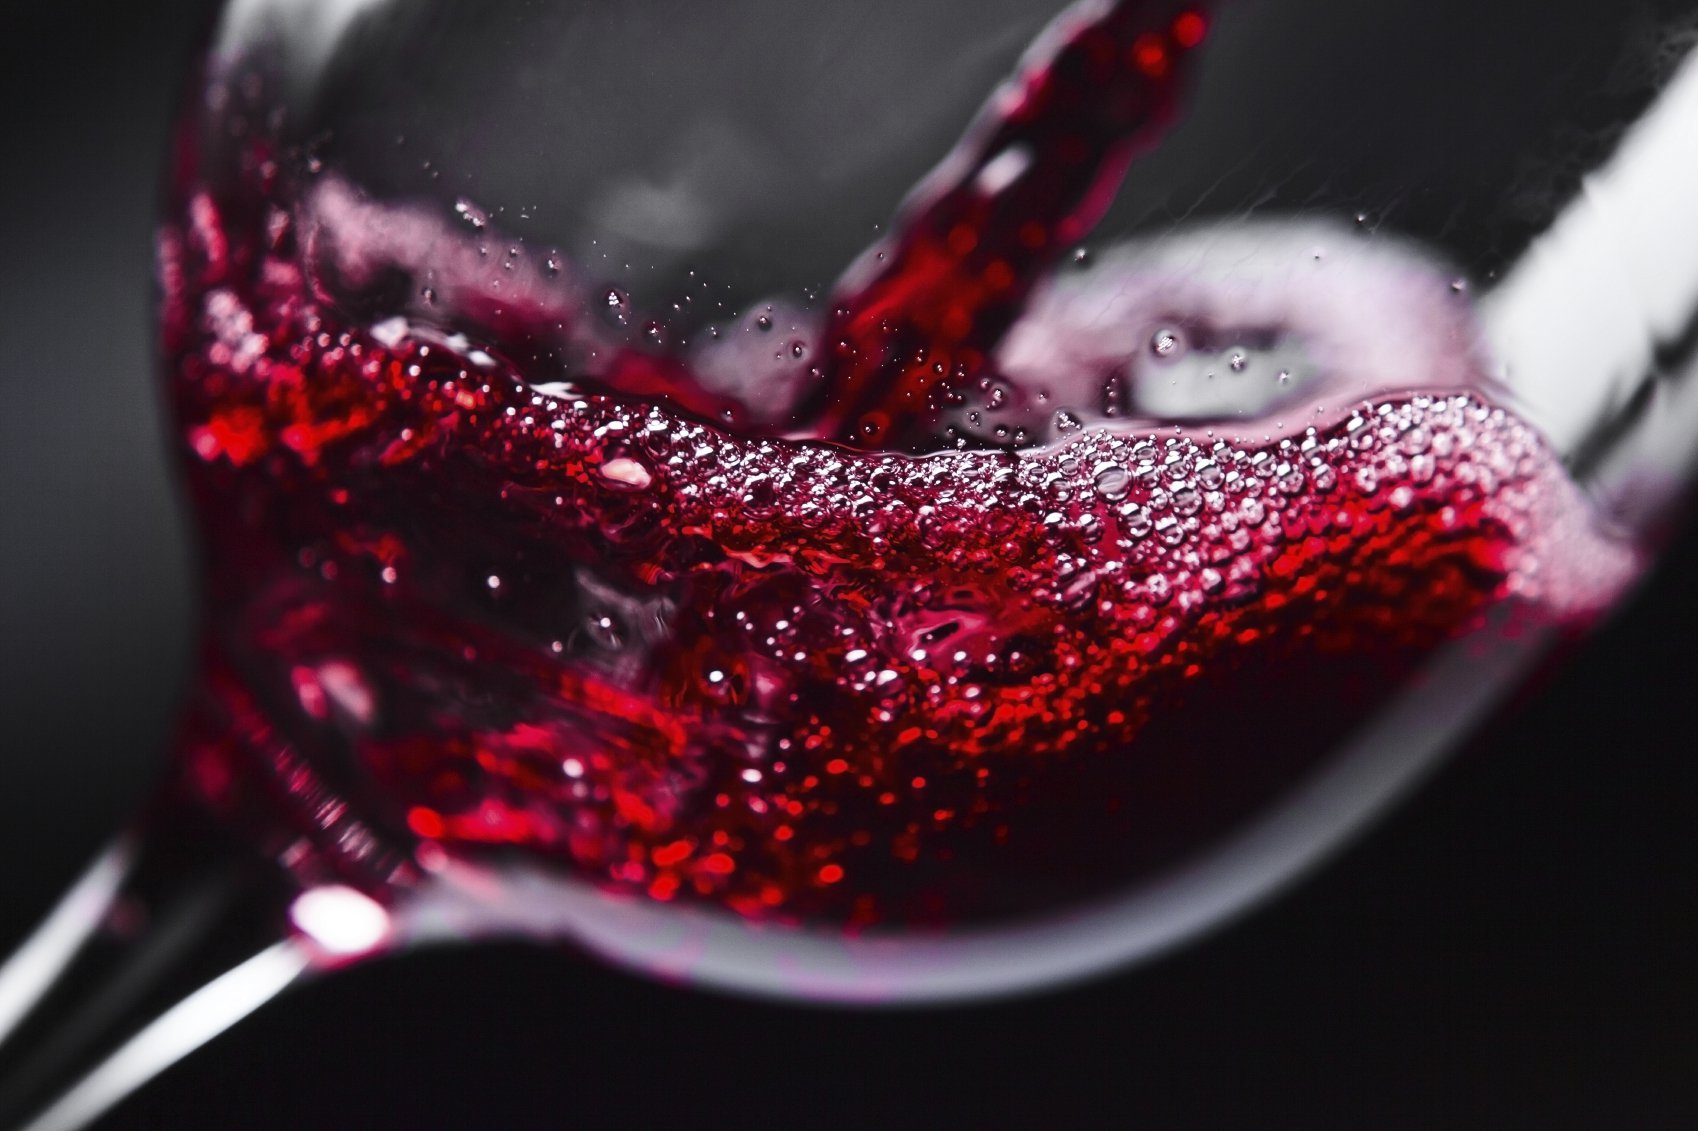 Red wine can prevent teeth and gum disease